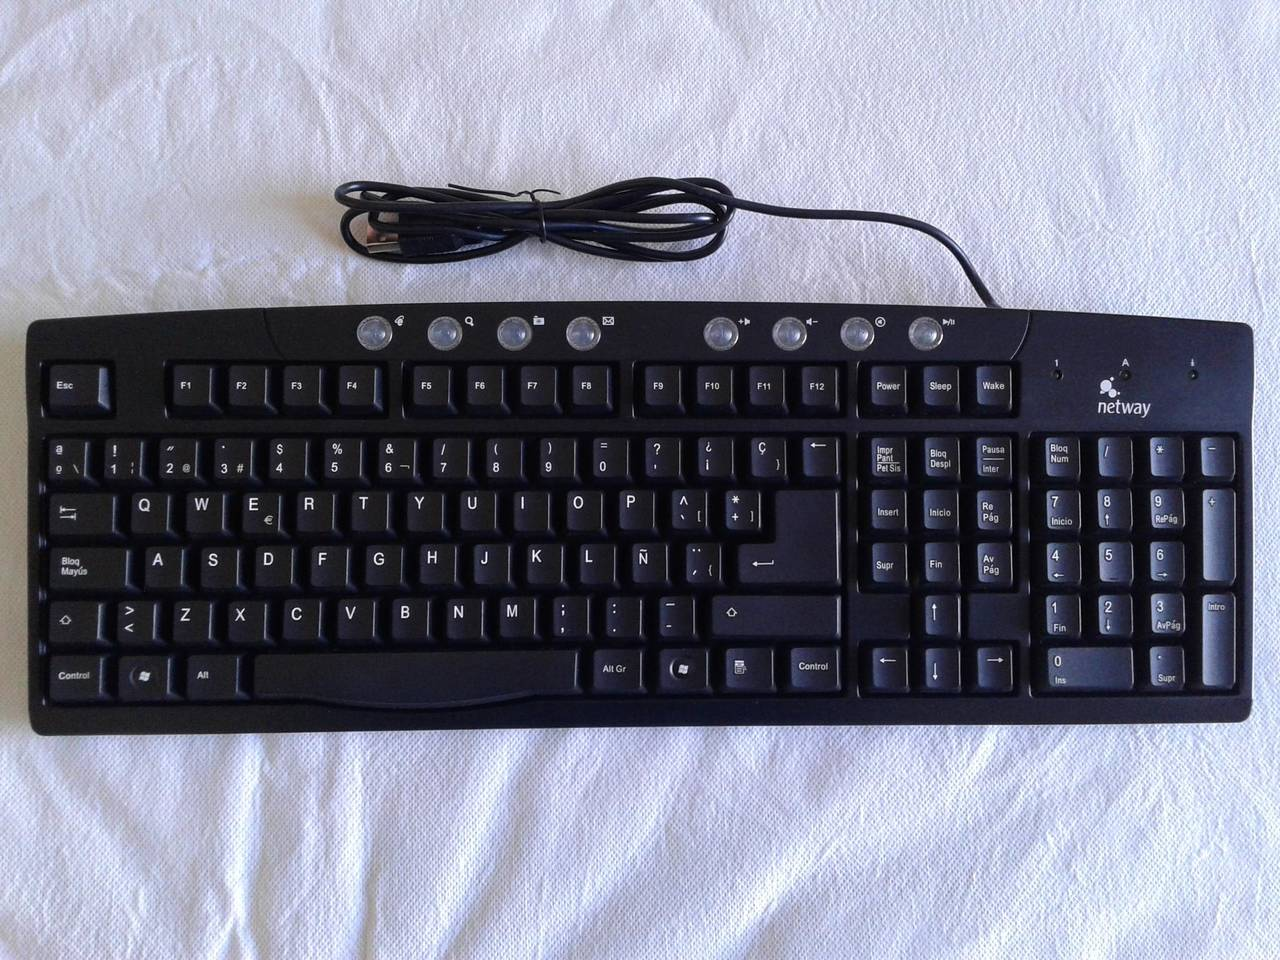 TECLADO NETWAY Join Us (Modelo F21-WE12)  - Foto 5